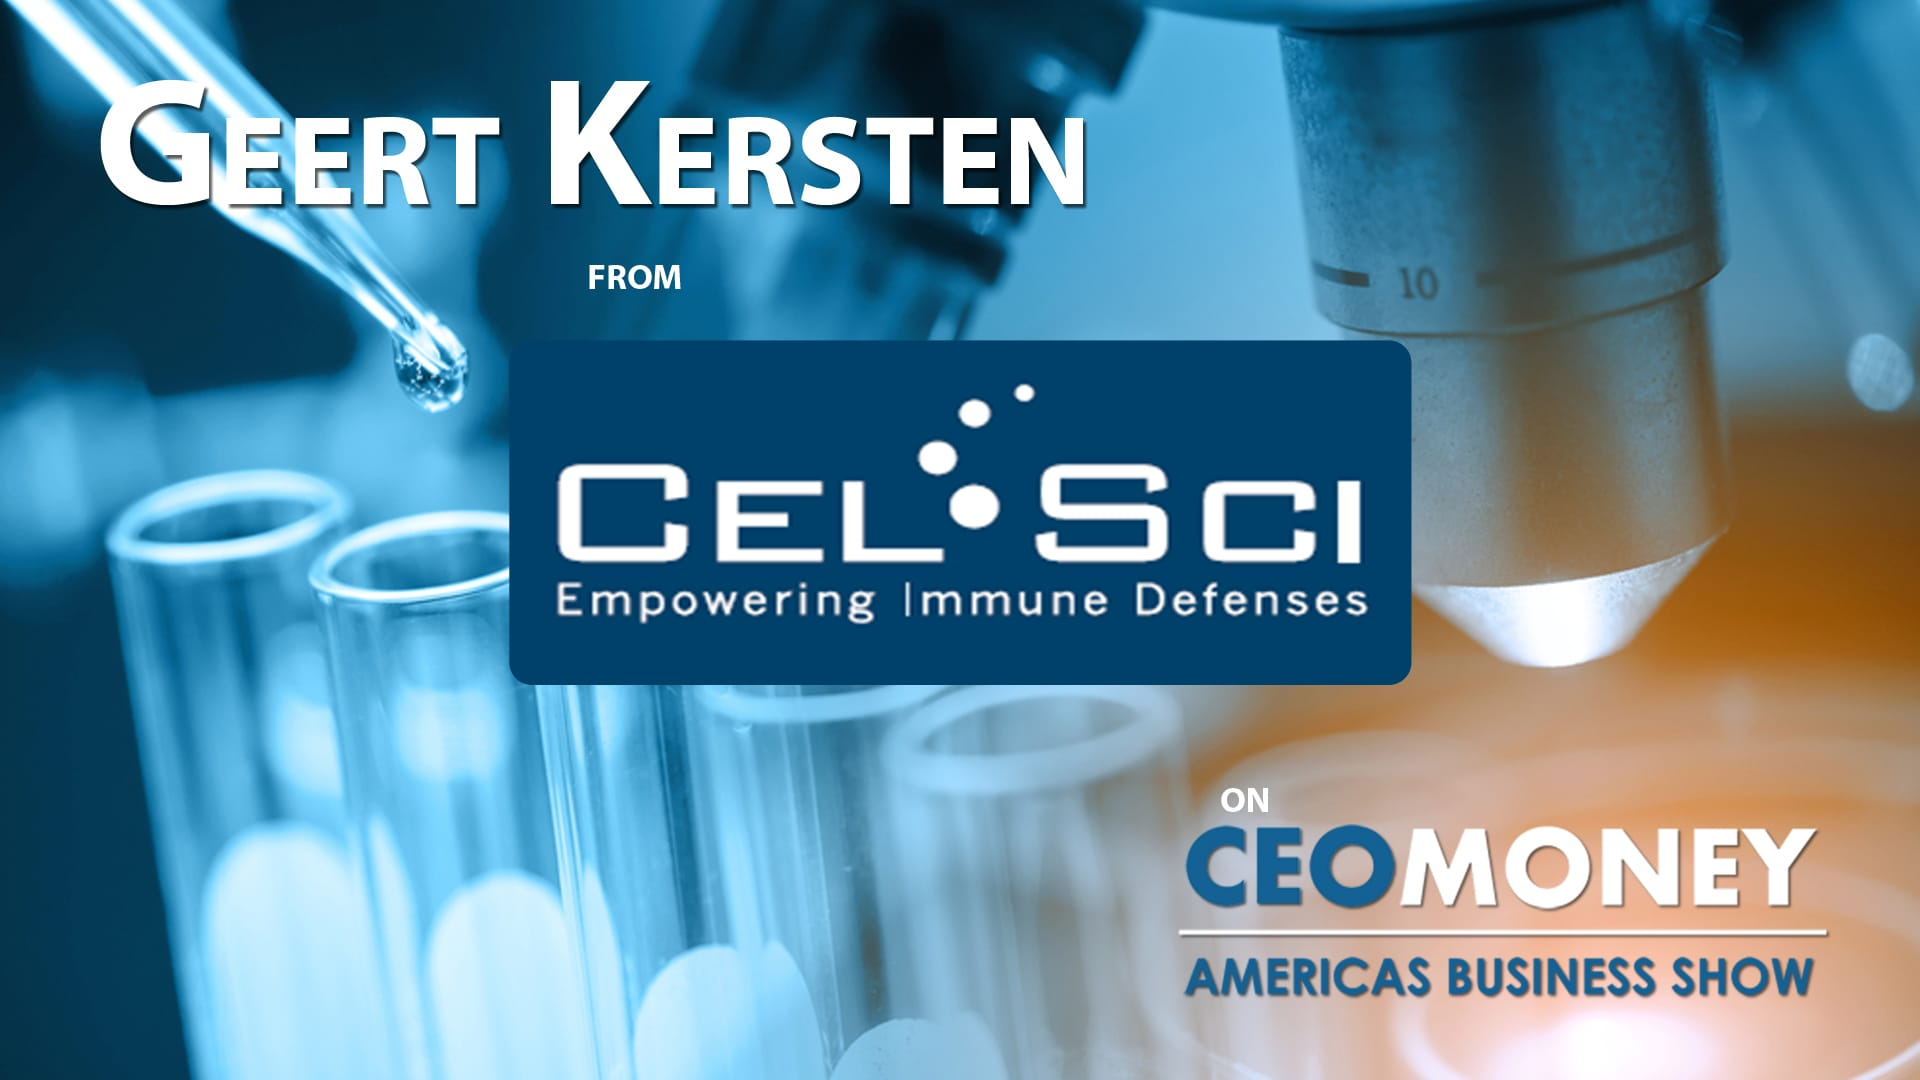 Geert Kersten from CEL-SCI on their novel immuno-oncology treatment Multikine